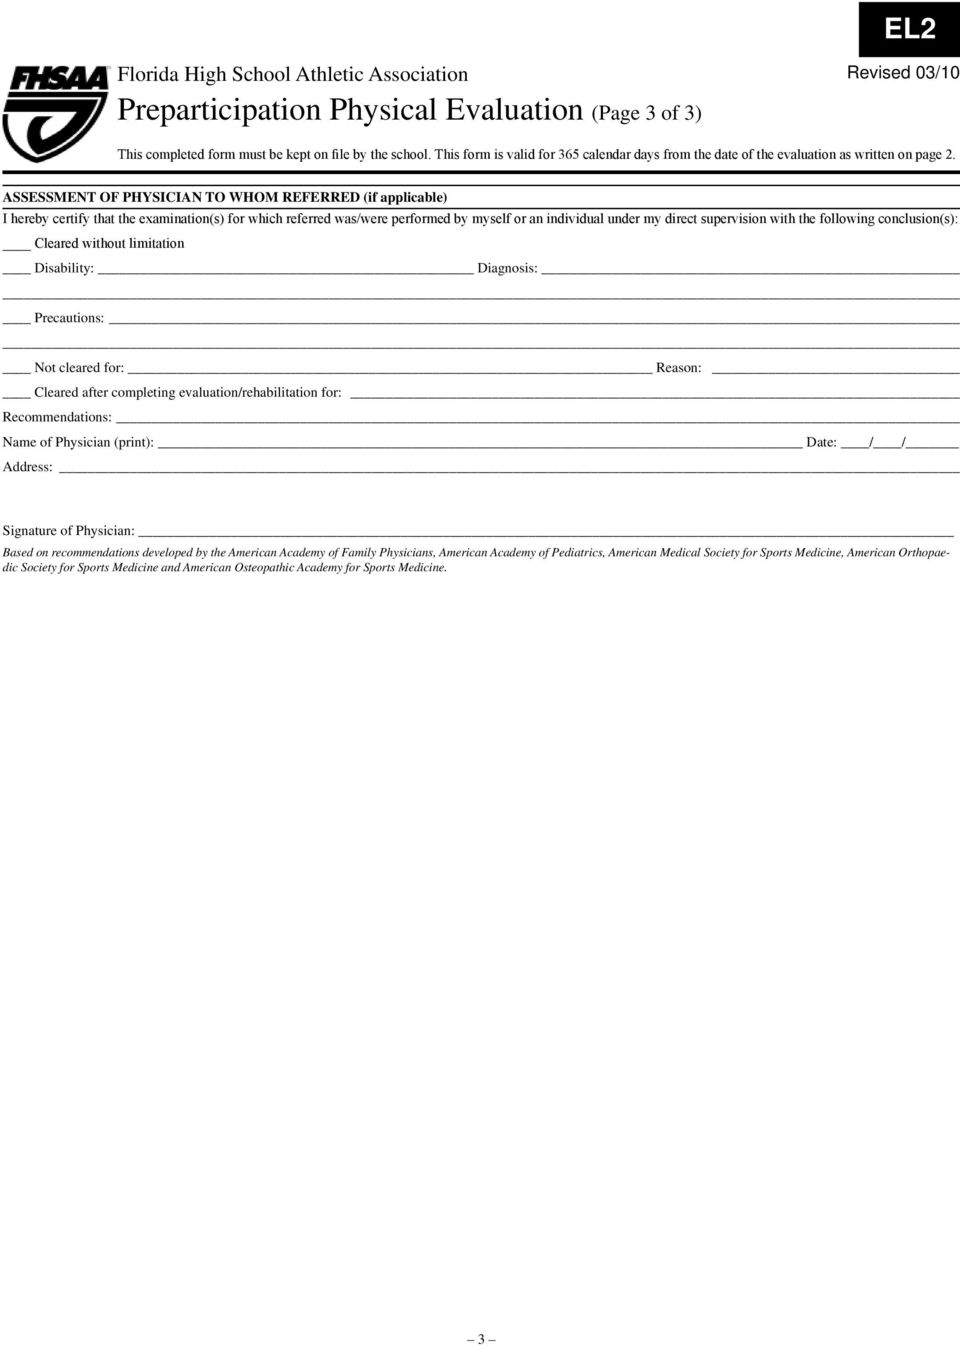 sports physical form florida  Florida High School Athletic Association Clearance for ...